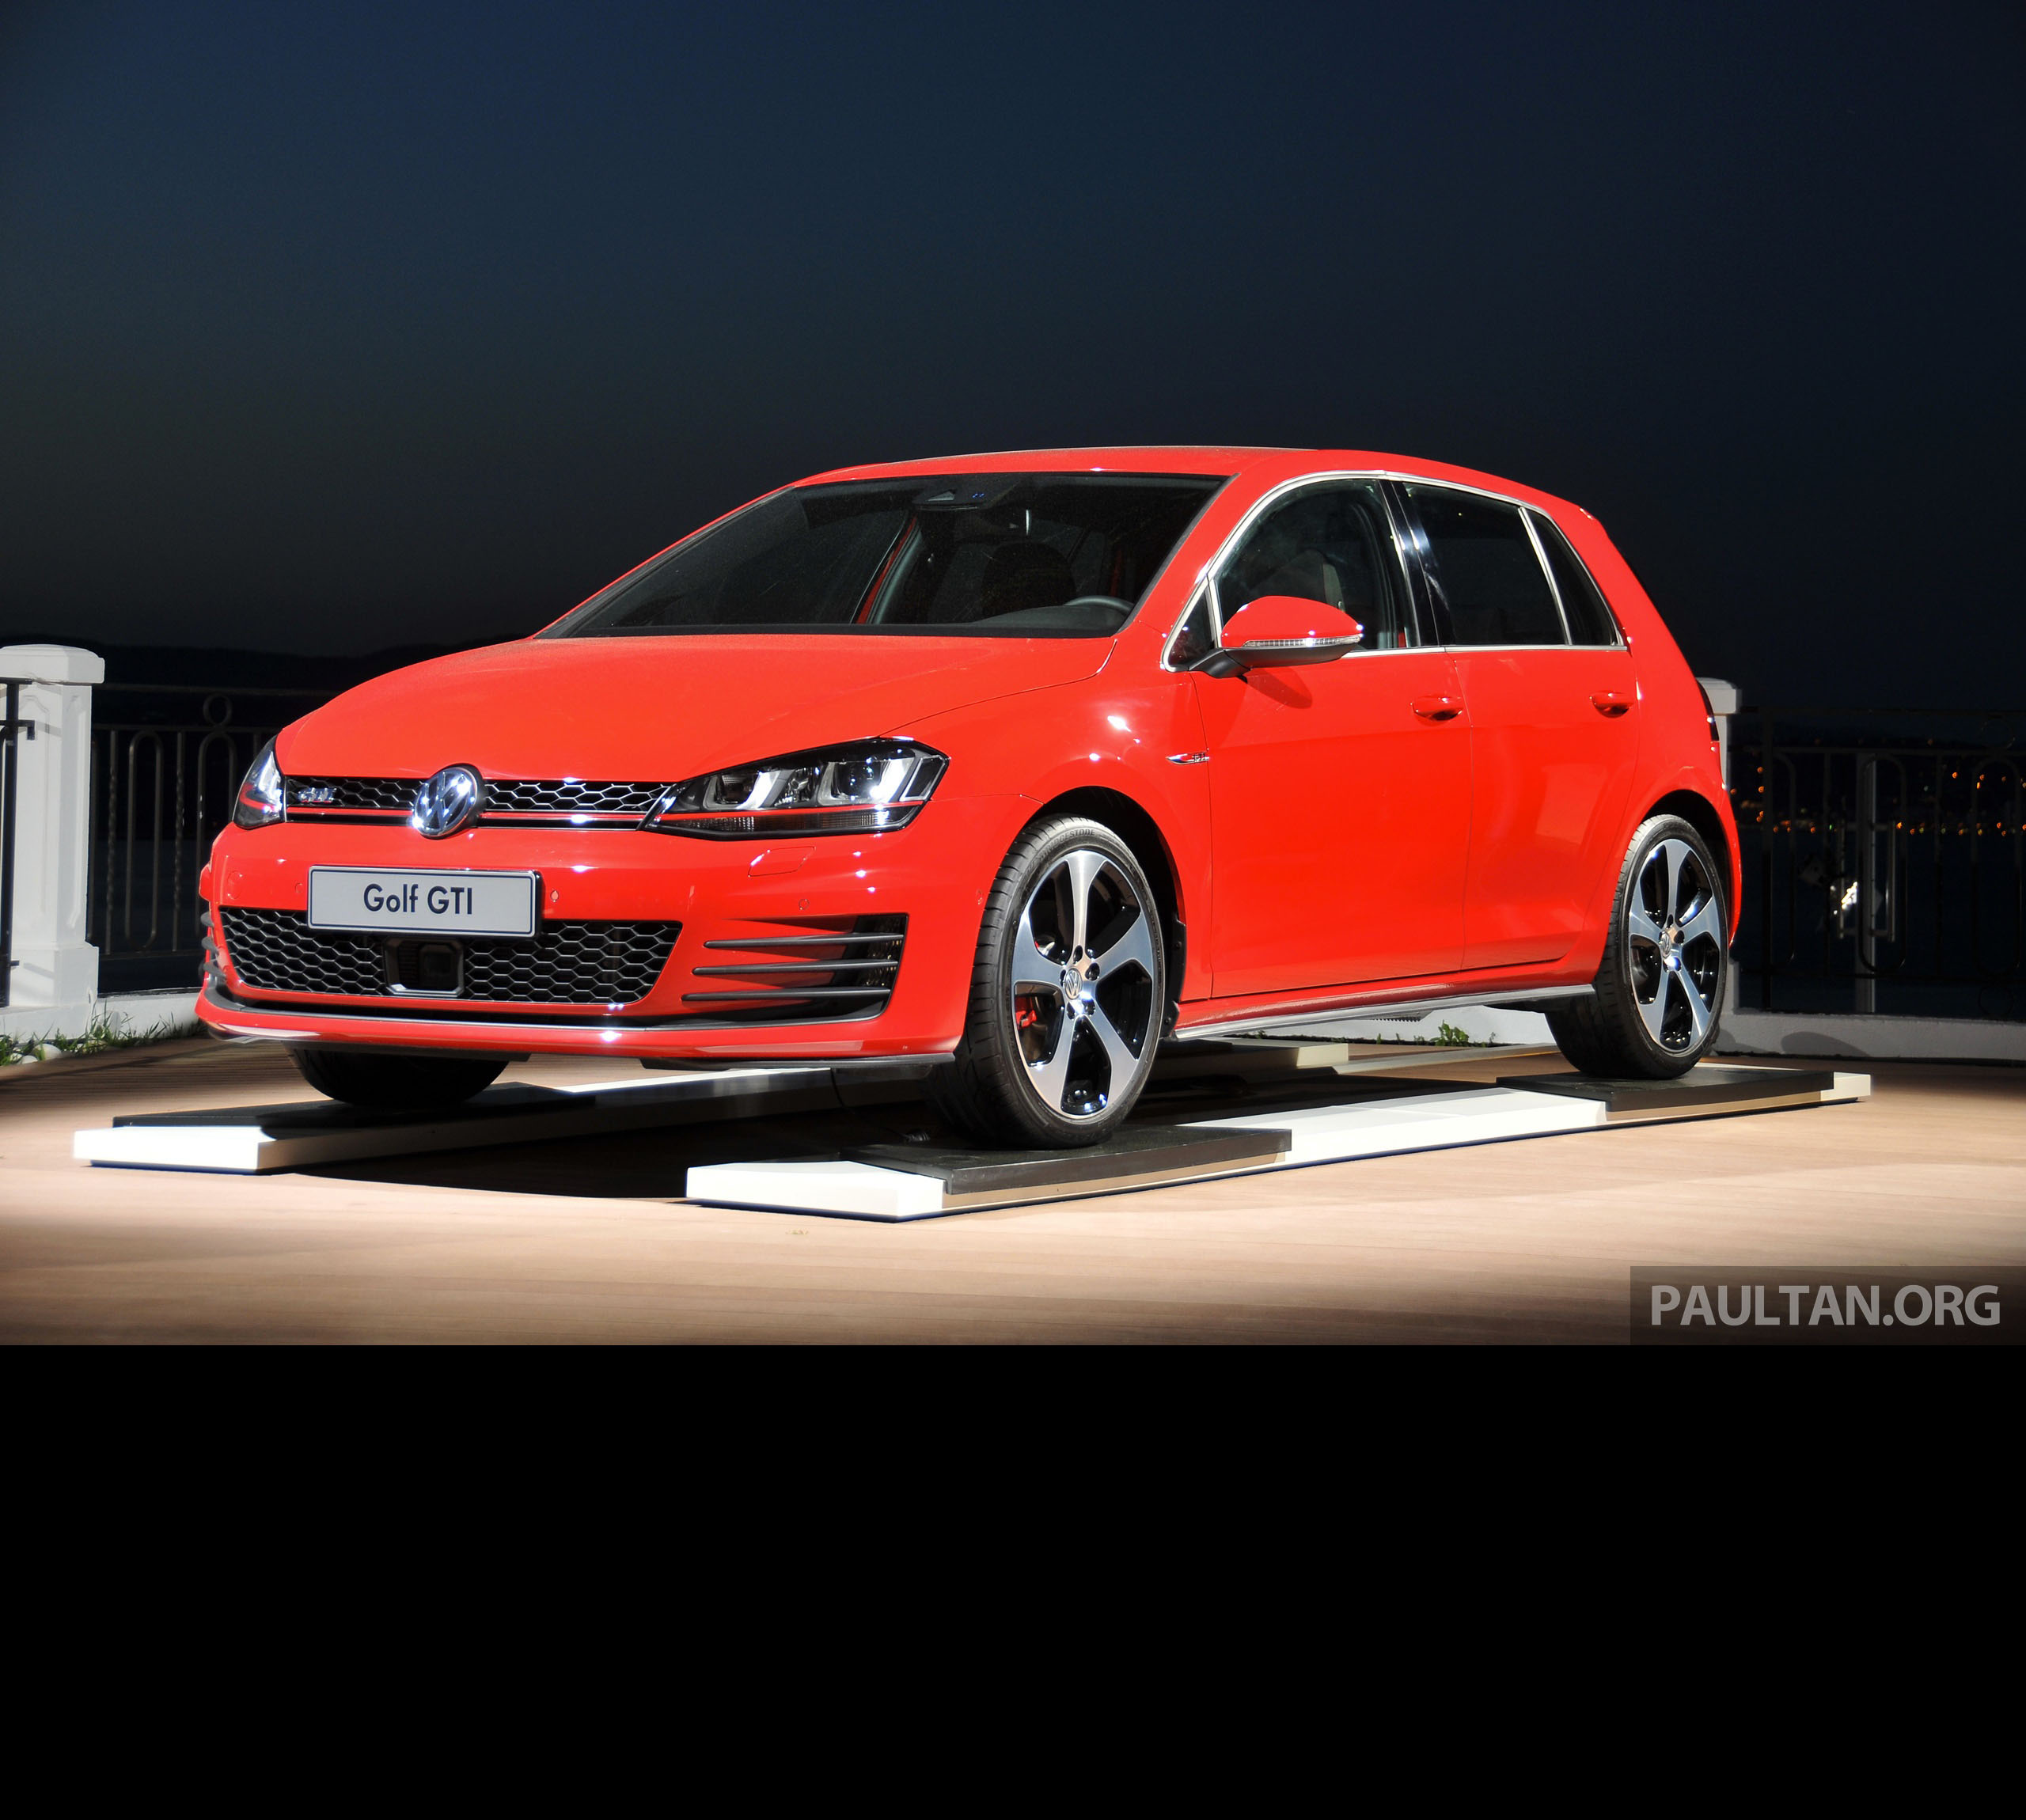 DRIVEN New 220 PS Volkswagen Golf GTI Mk7 tested